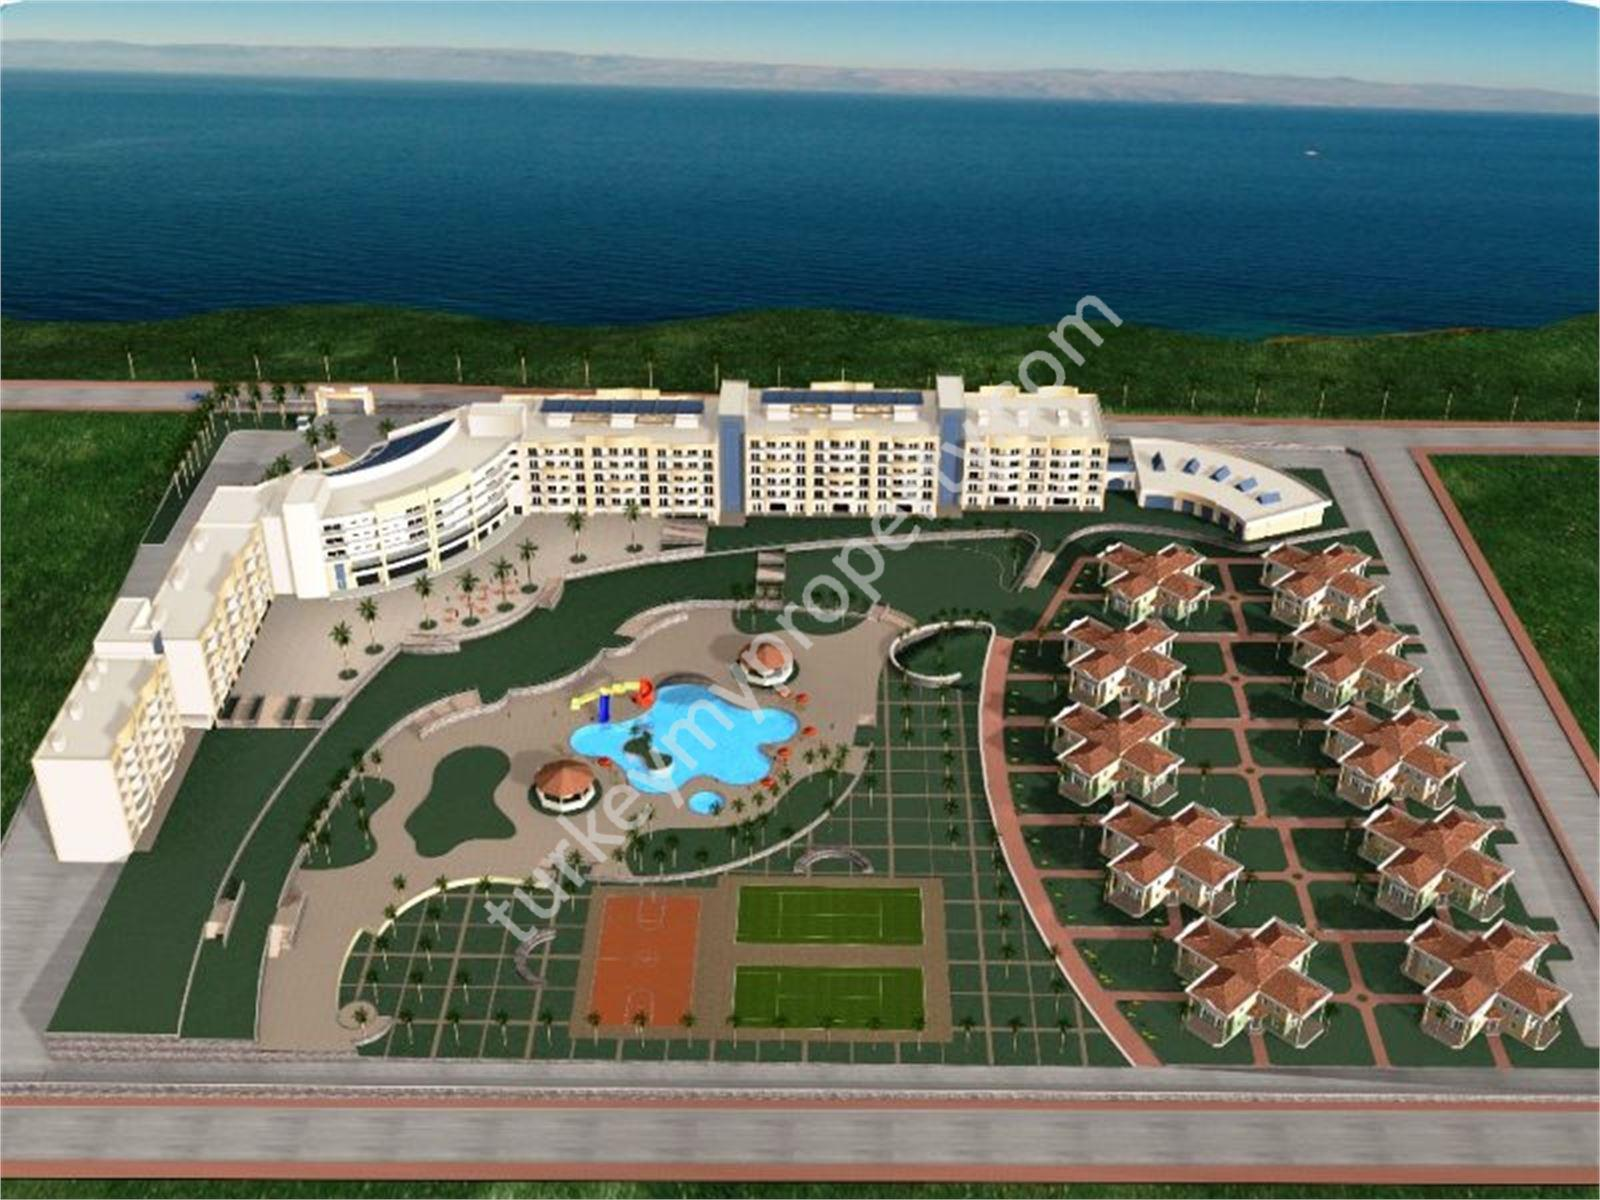 Hotel (7 buildings with 40 villas) overlooking the sea for sale in Izmir